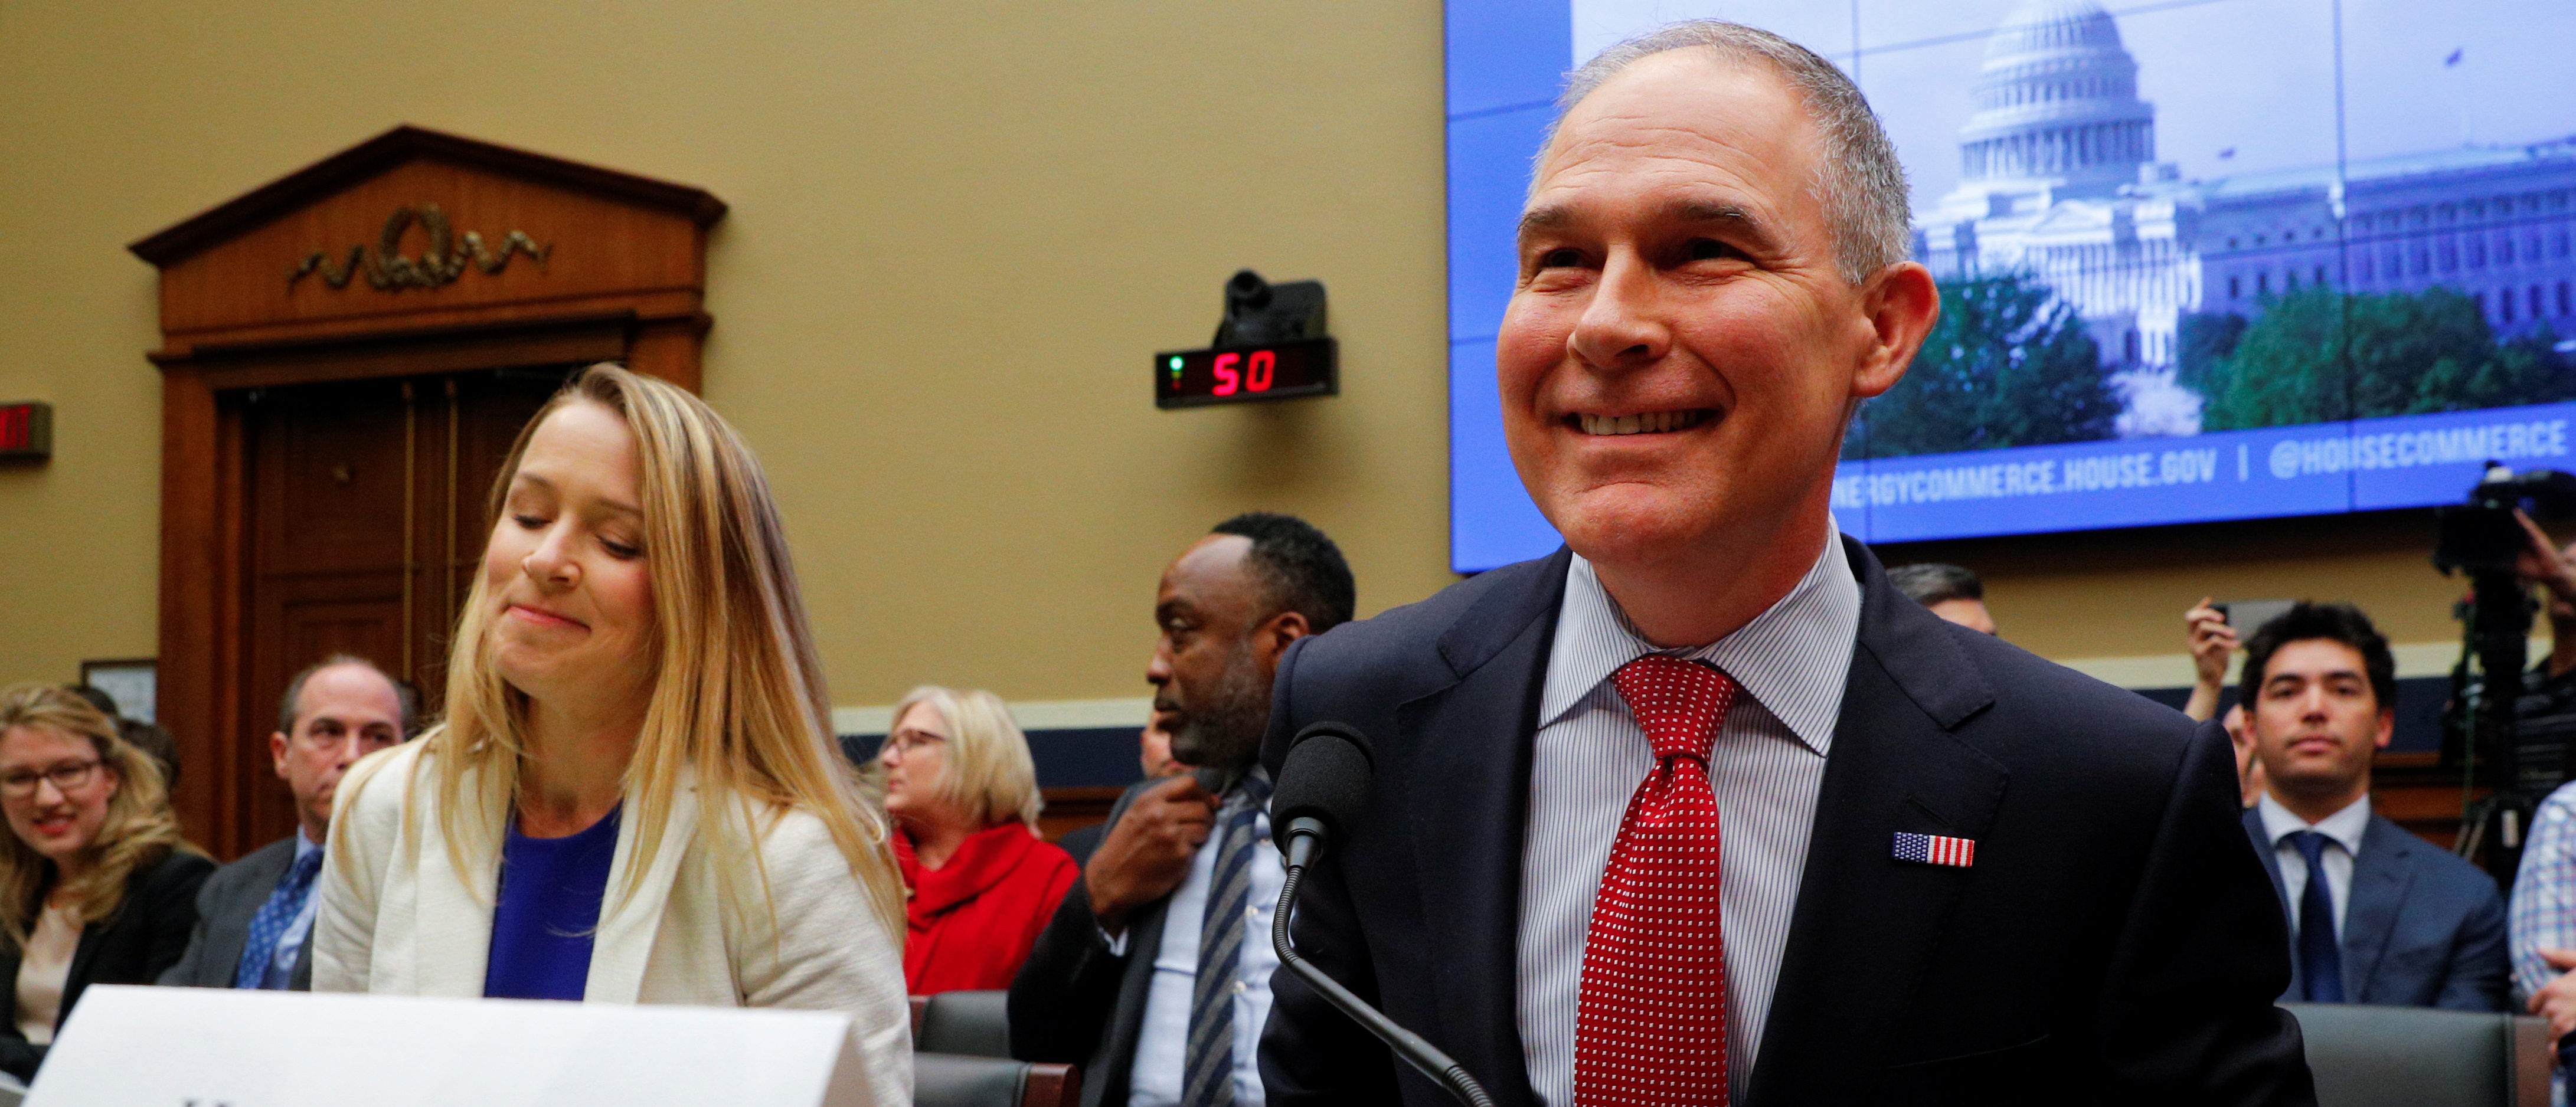 EPA Administrator Scott Pruitt testifies before a House Energy and Commerce Subcommittee hearing on the FY2019 Environmental Protection Agency budget in Washington, U.S., April 26, 2018. REUTERS/Brian Snyder | Pruitt Sticks With Trump's Agenda